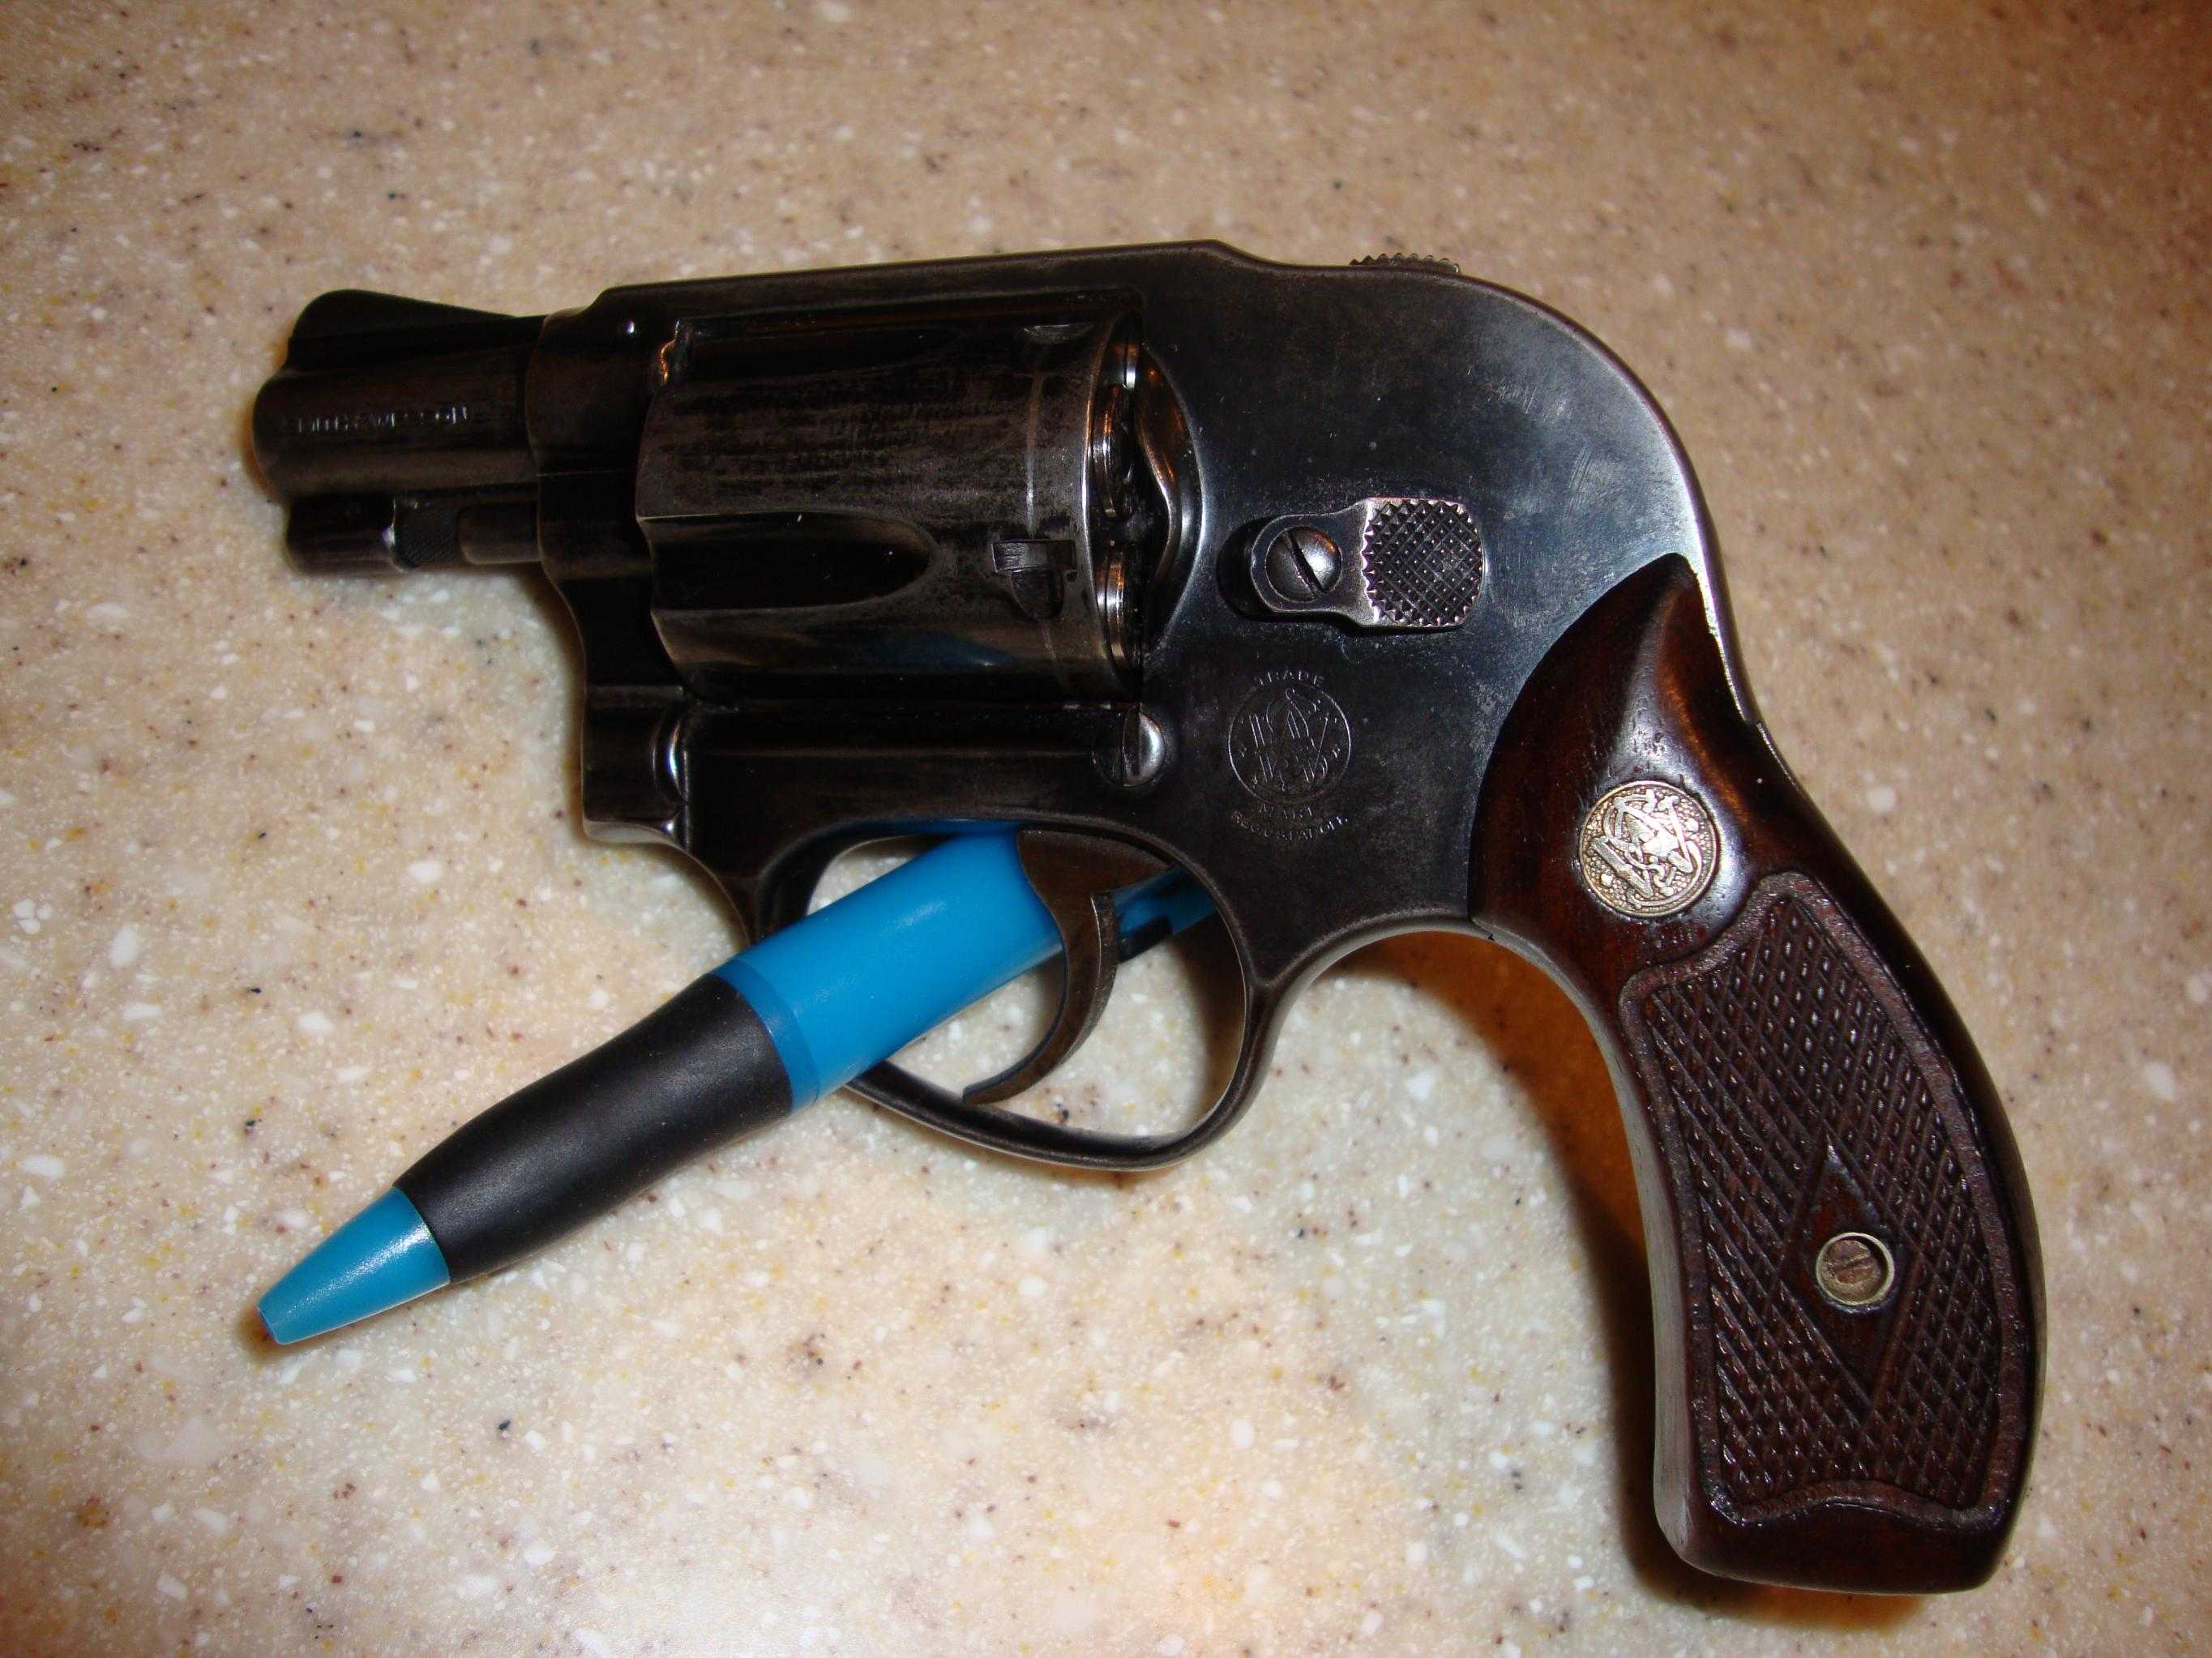 Ordered an S&W 638 today-dsc00607.jpg